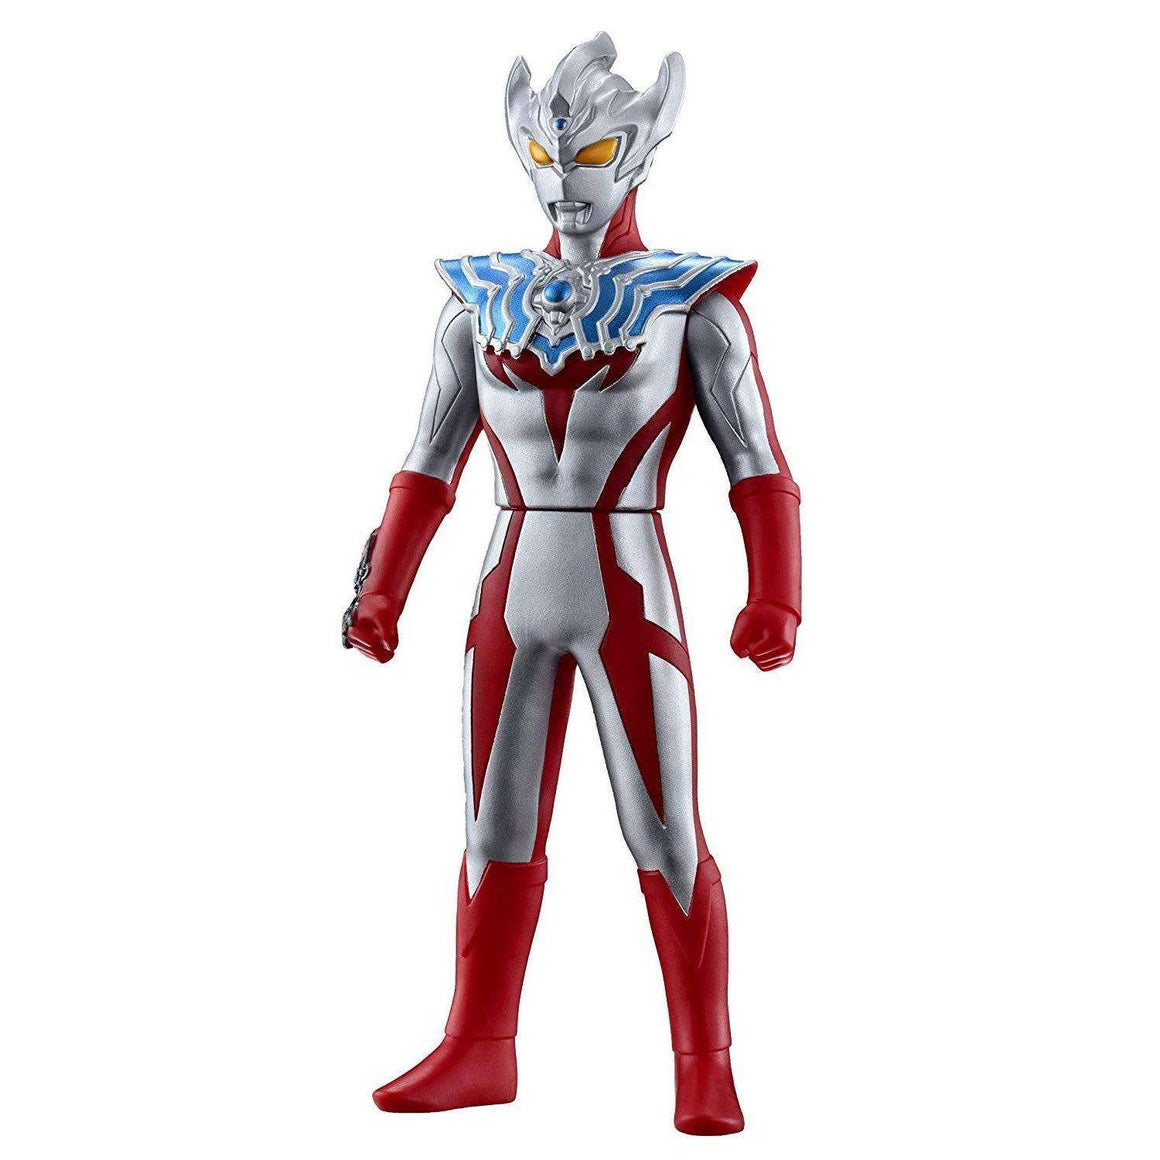 CSTOYS INTERNATIONAL:[Early July 2019] Ultraman Taiga: UHS65 Ultraman Taiga